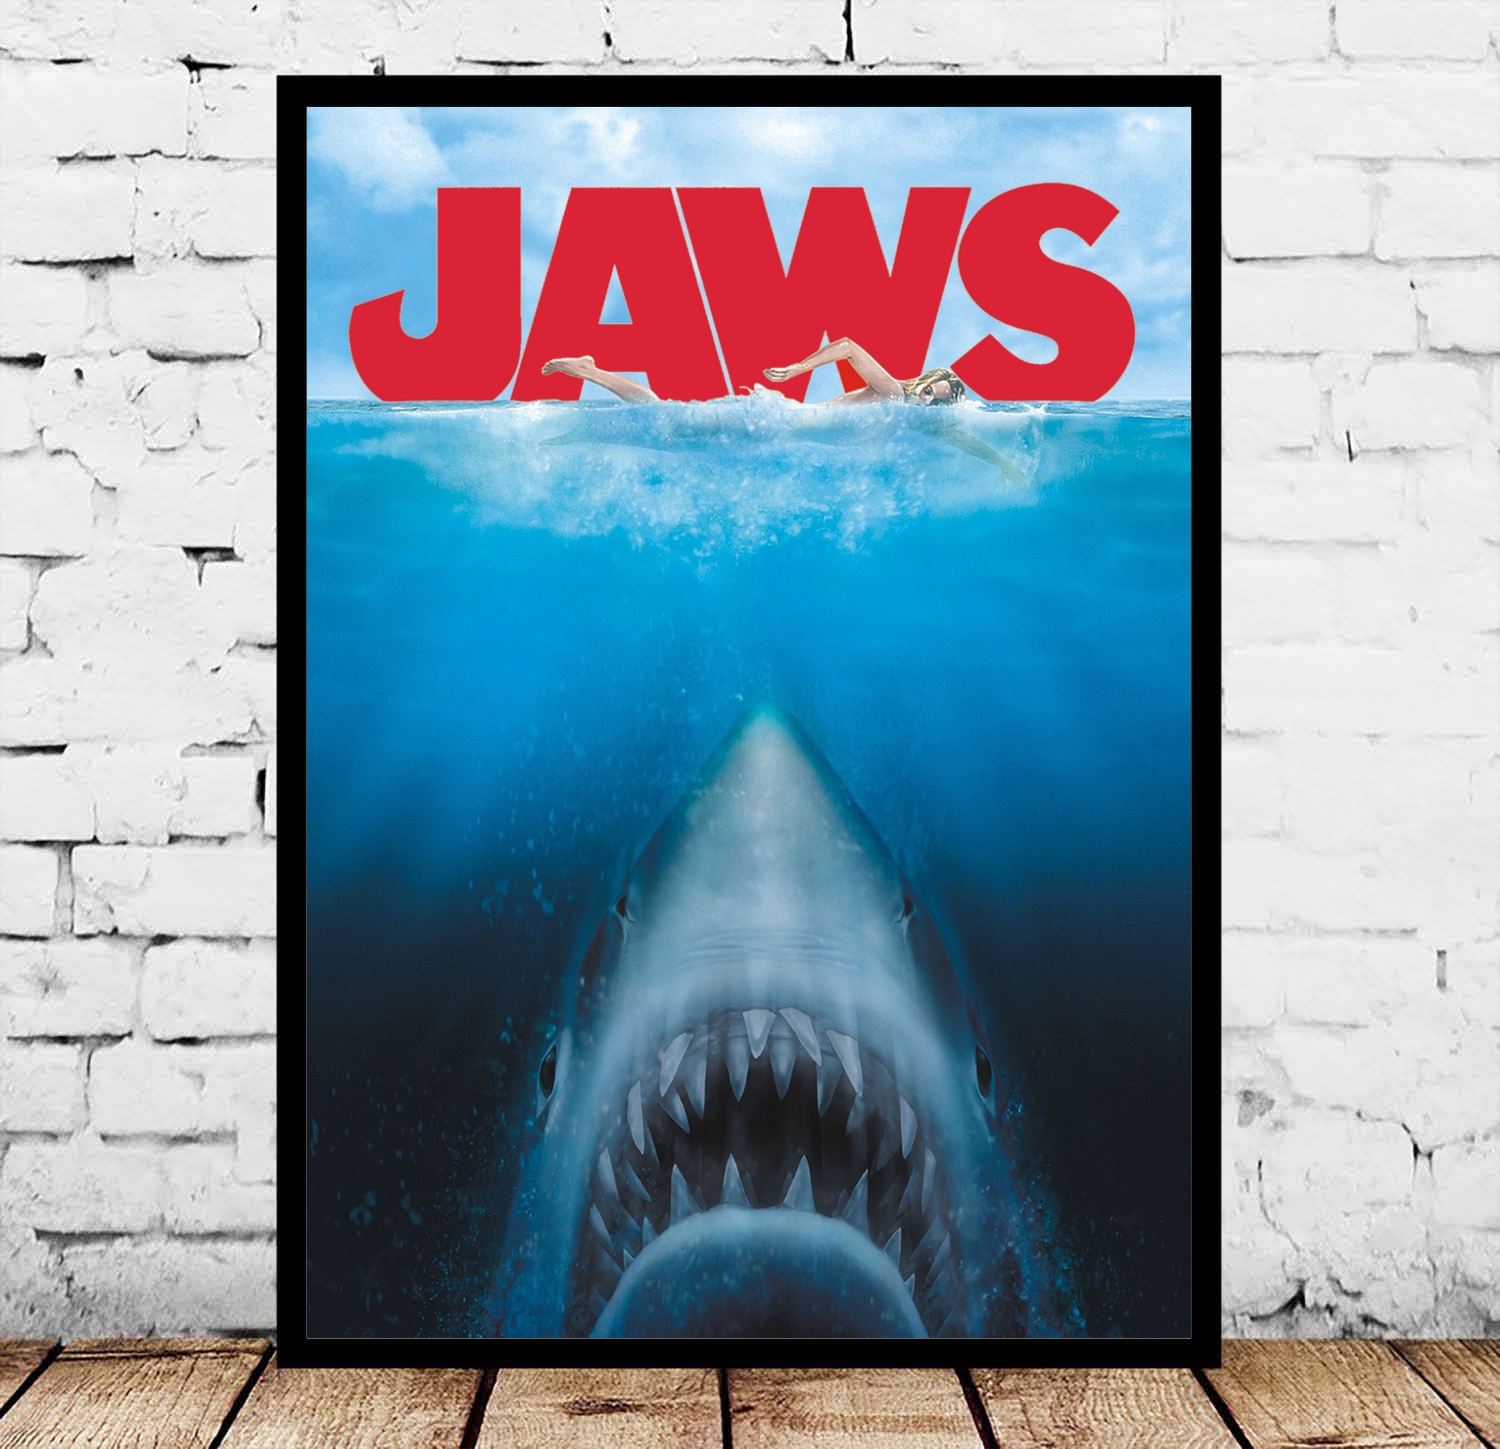 Steven Spielberg's Jaws The Great White Shark Movie Posters Silk Art Painting Wall Art No Frame image